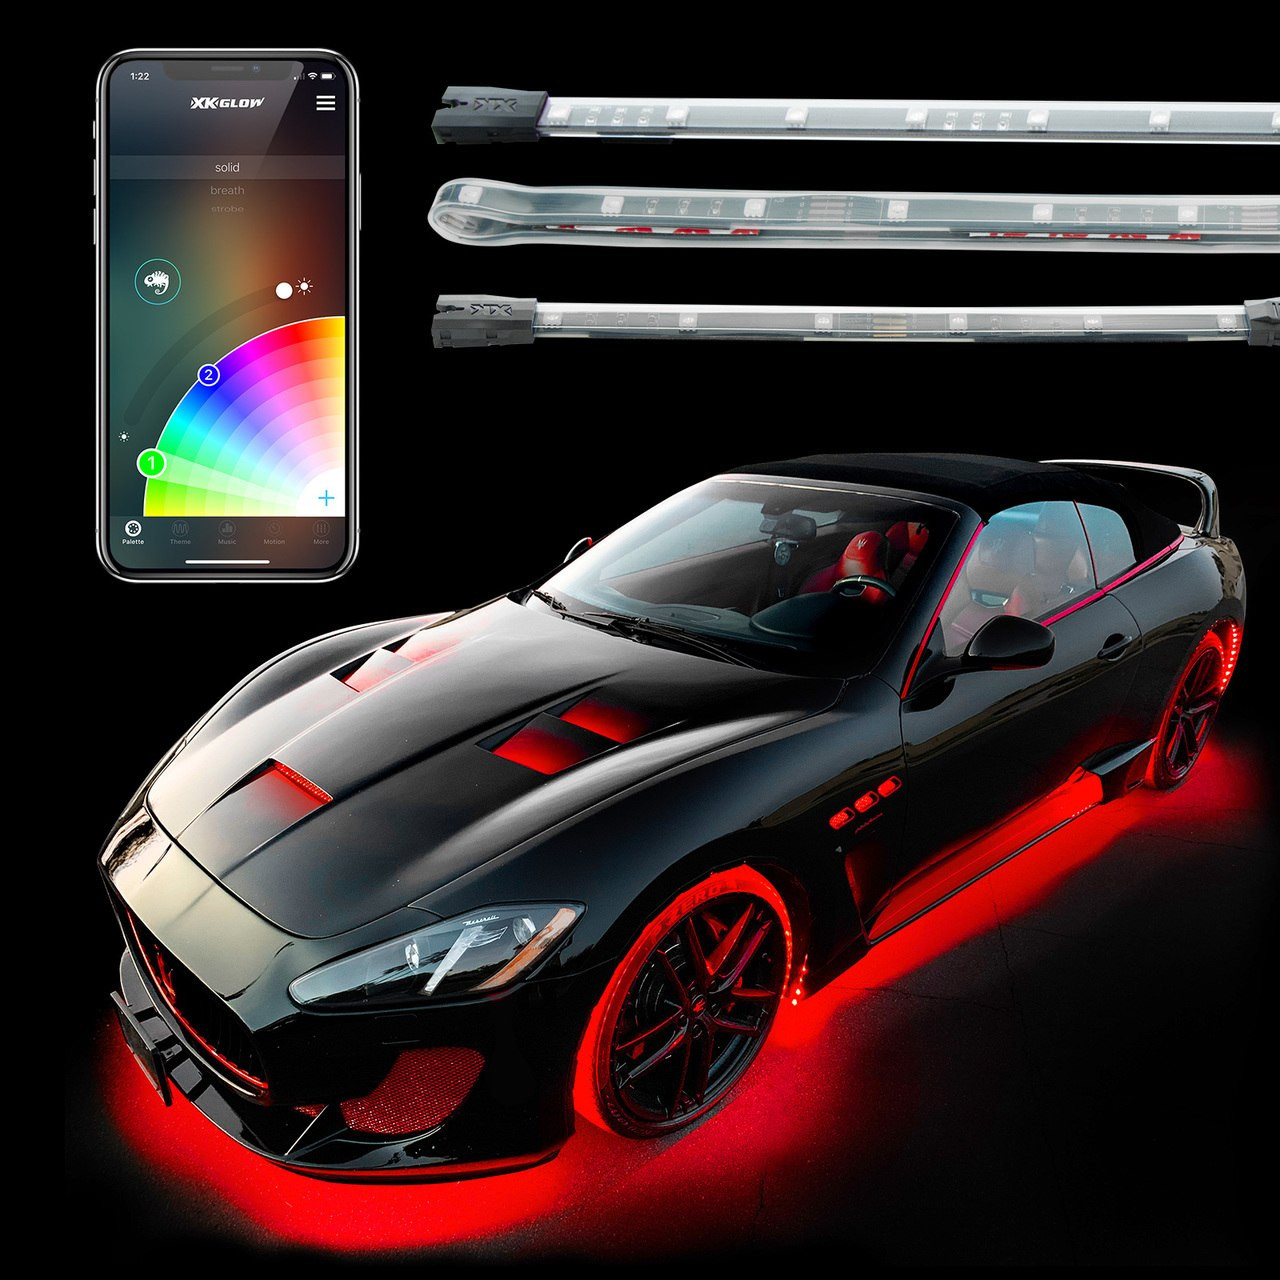 underglow interior led accent light kits for cars xkchrome smartphone app